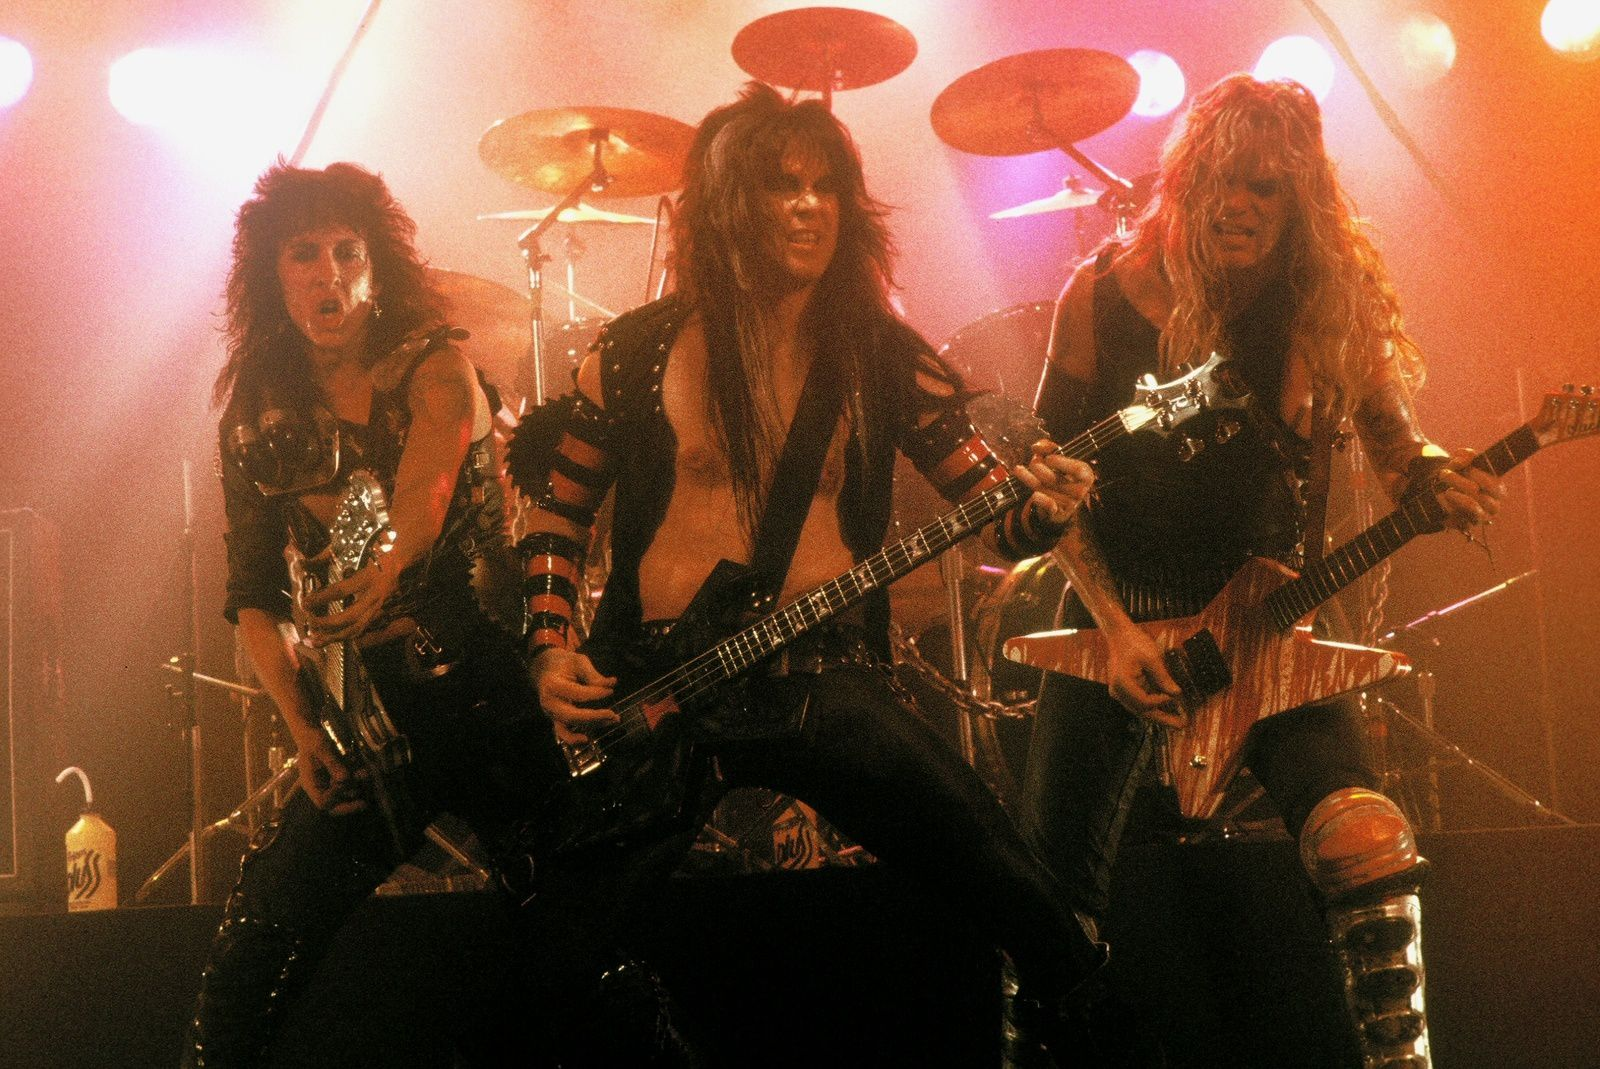 Blackie Lawless, Chris Holmes, Randy Piper (W.A.S.P.)